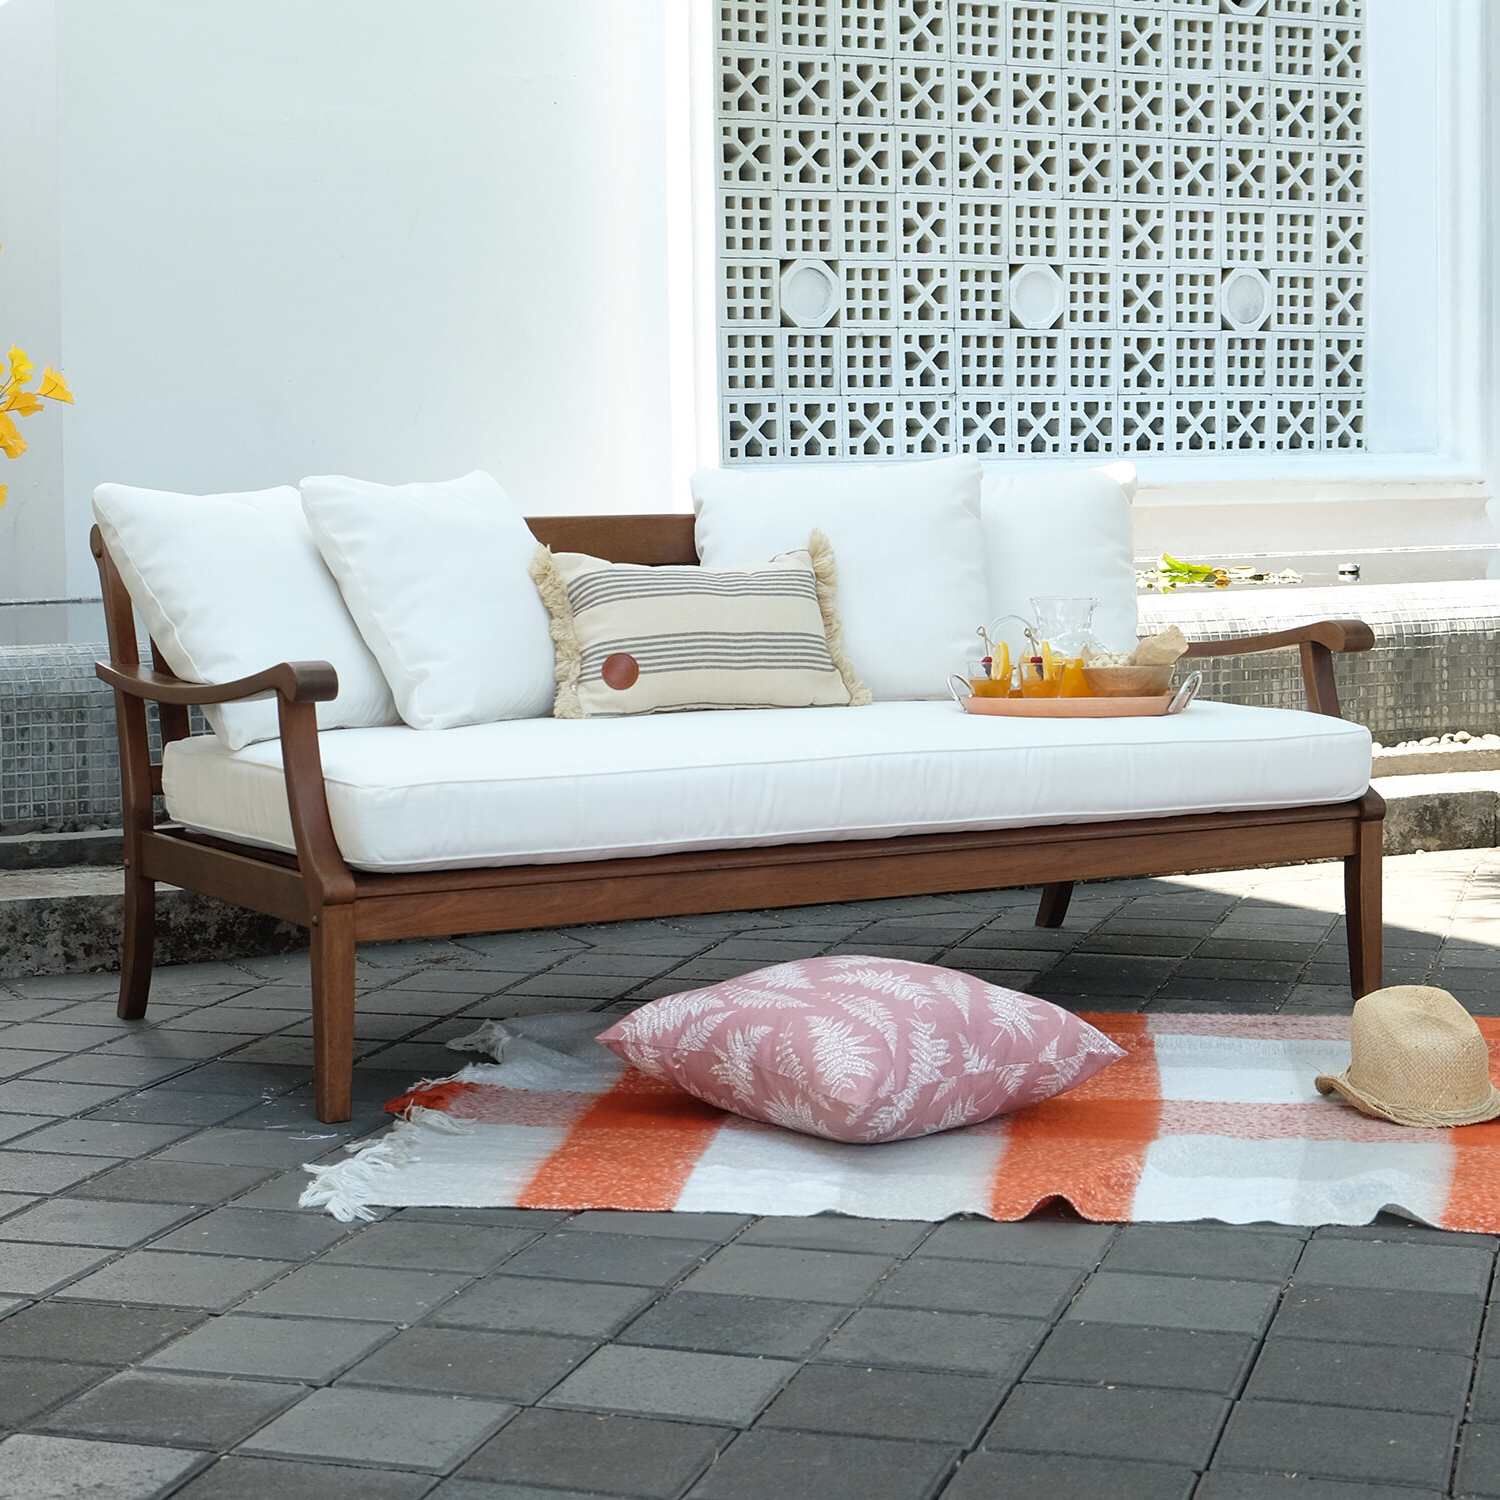 Popular Cushion: Charming Daybed Cushion For Indoor And Outdoor Pertaining To Ellanti Patio Daybeds With Cushions (Gallery 20 of 25)